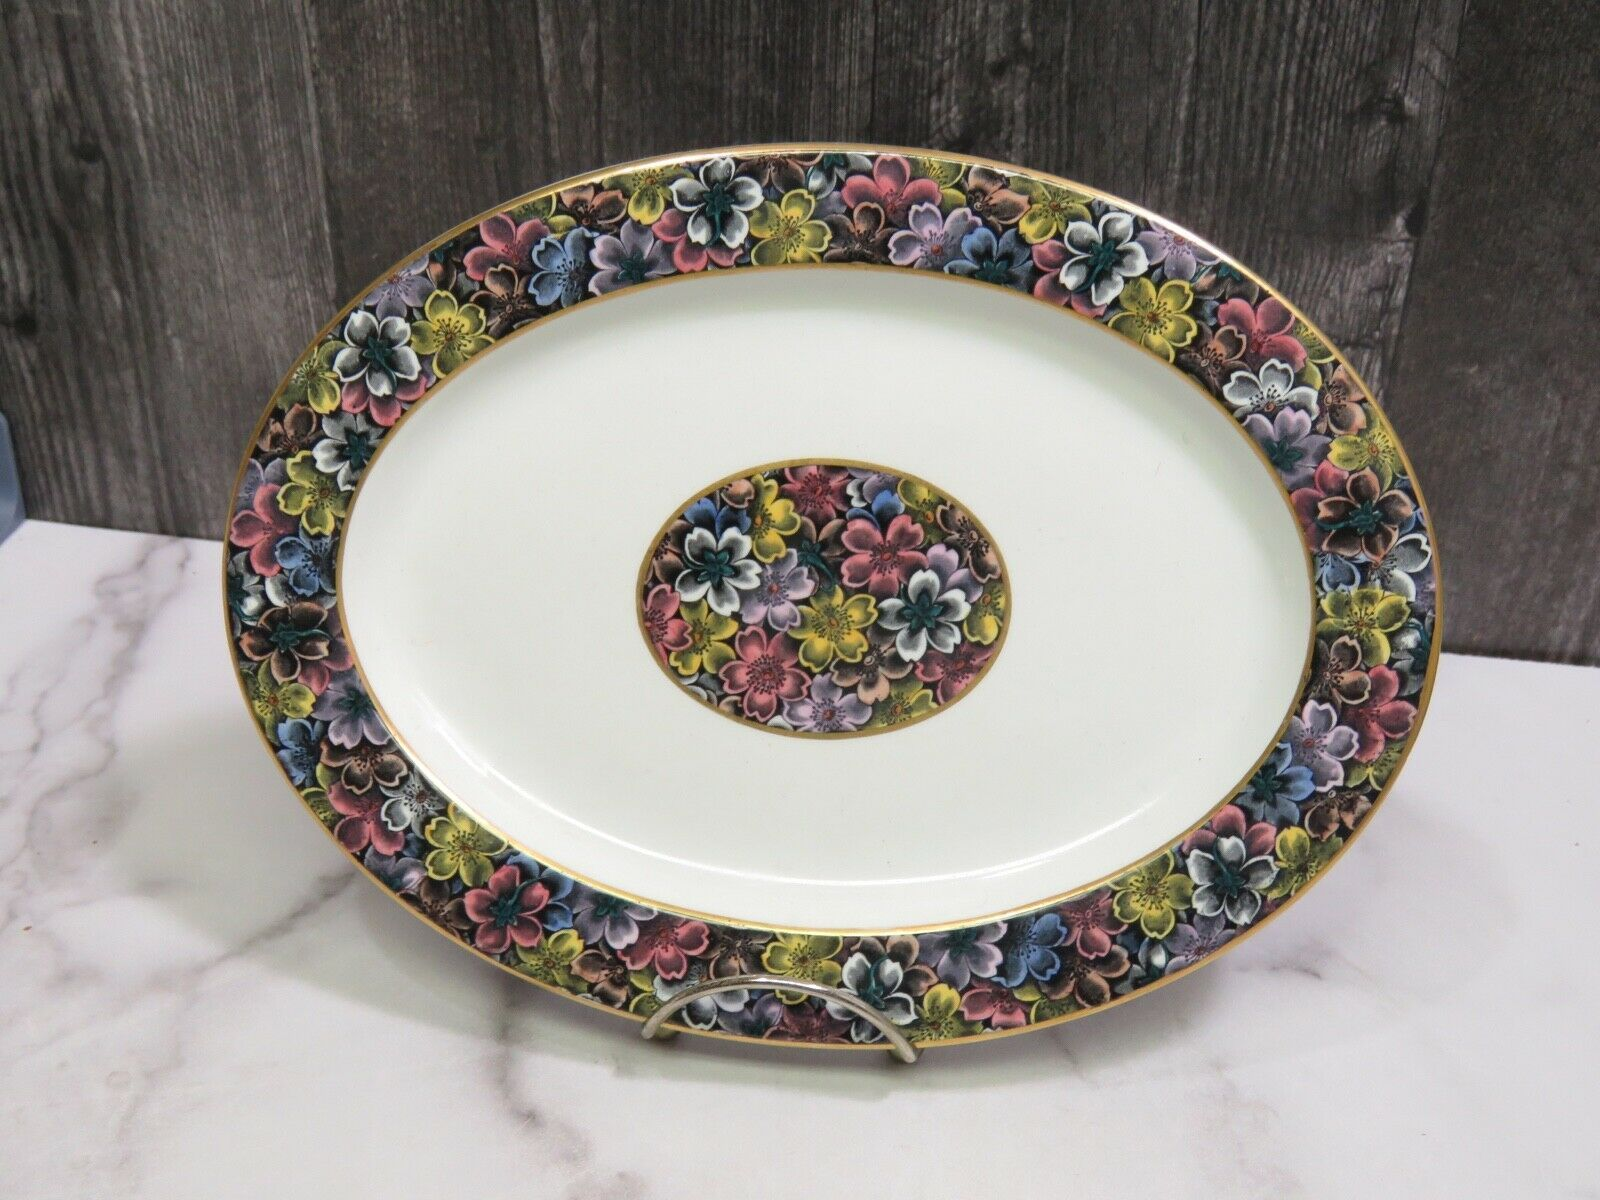 Primary image for Antique Royal Worcester for Tiffany & Co Imari Floral Oval Platter 10 3/8""